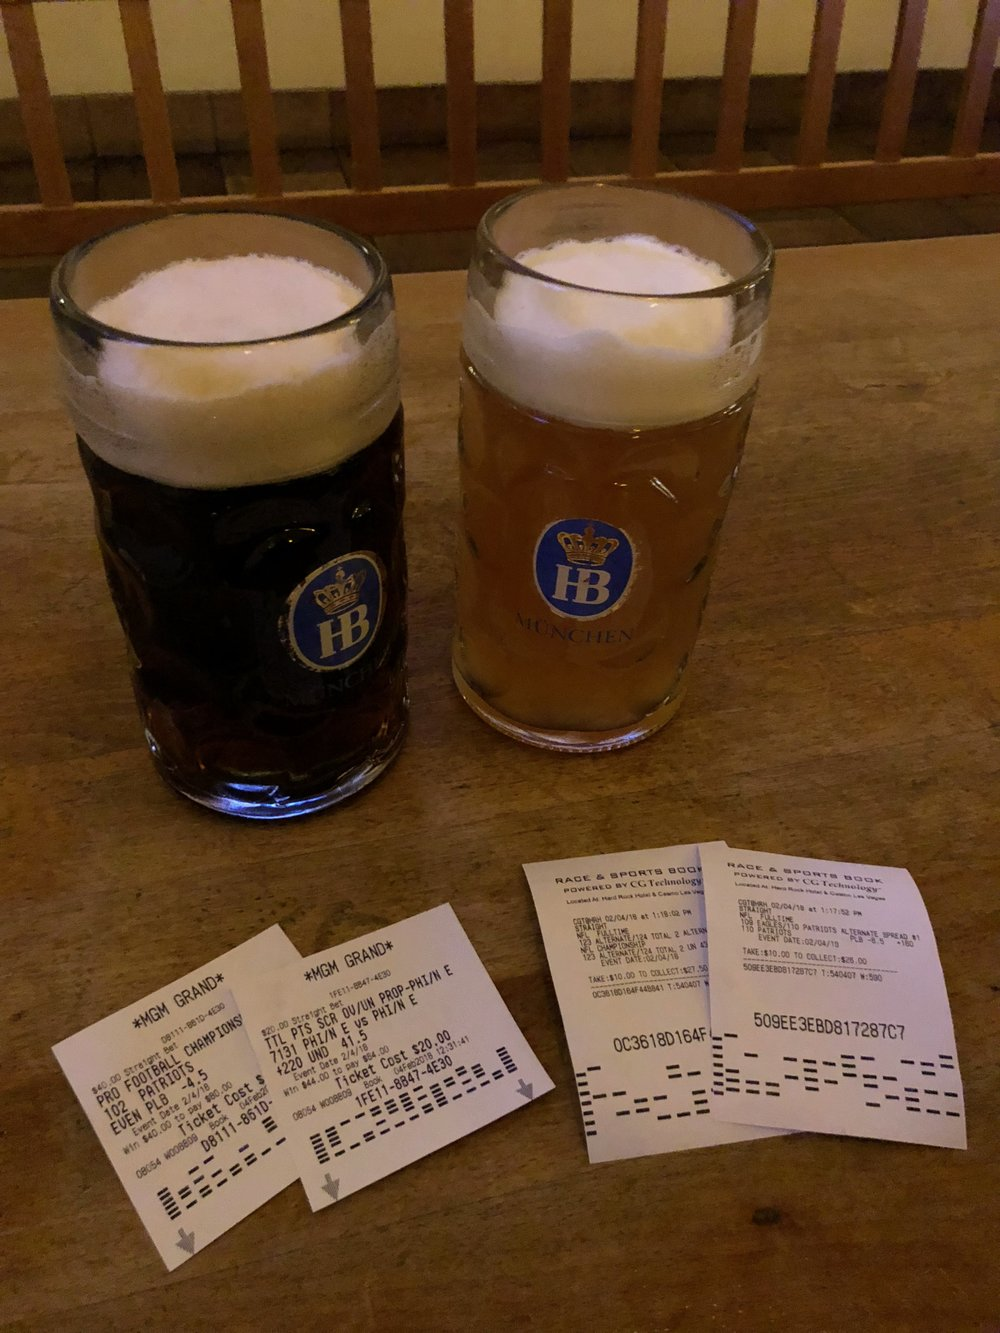 Beer and bets on the game - none of which worked out...